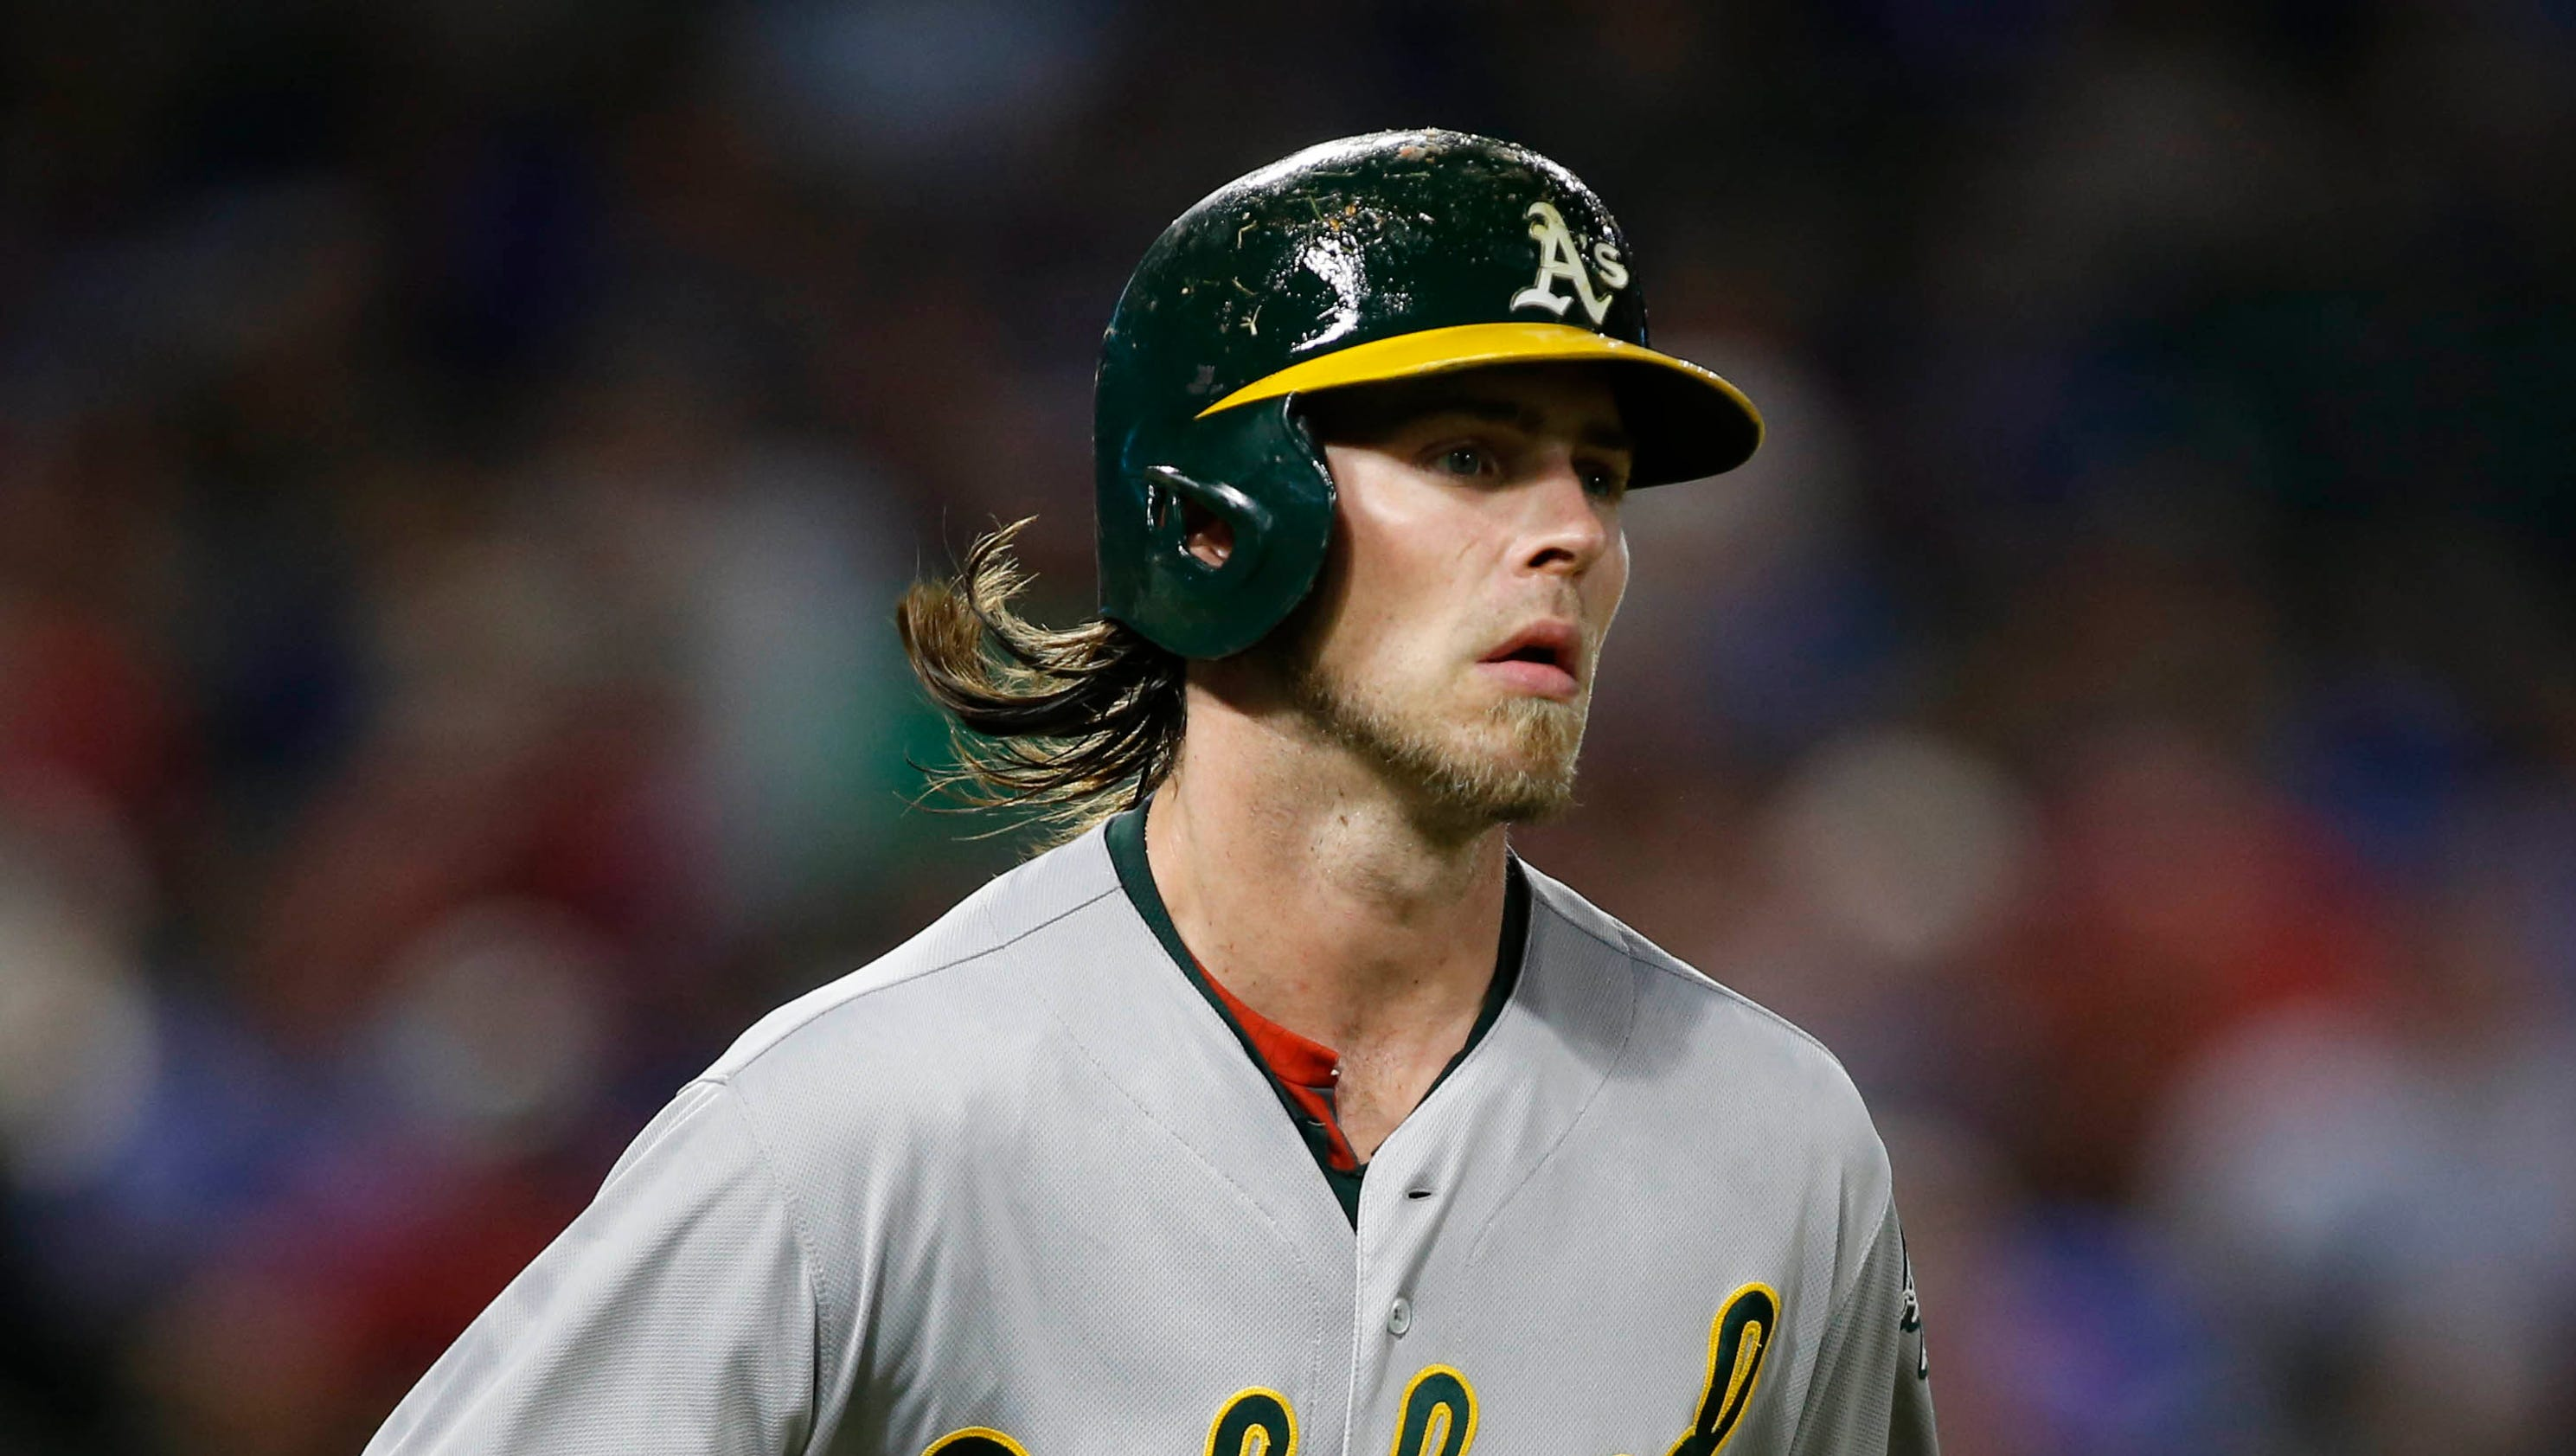 Dodgers will get instant impact from Josh Reddick, Rich Hill